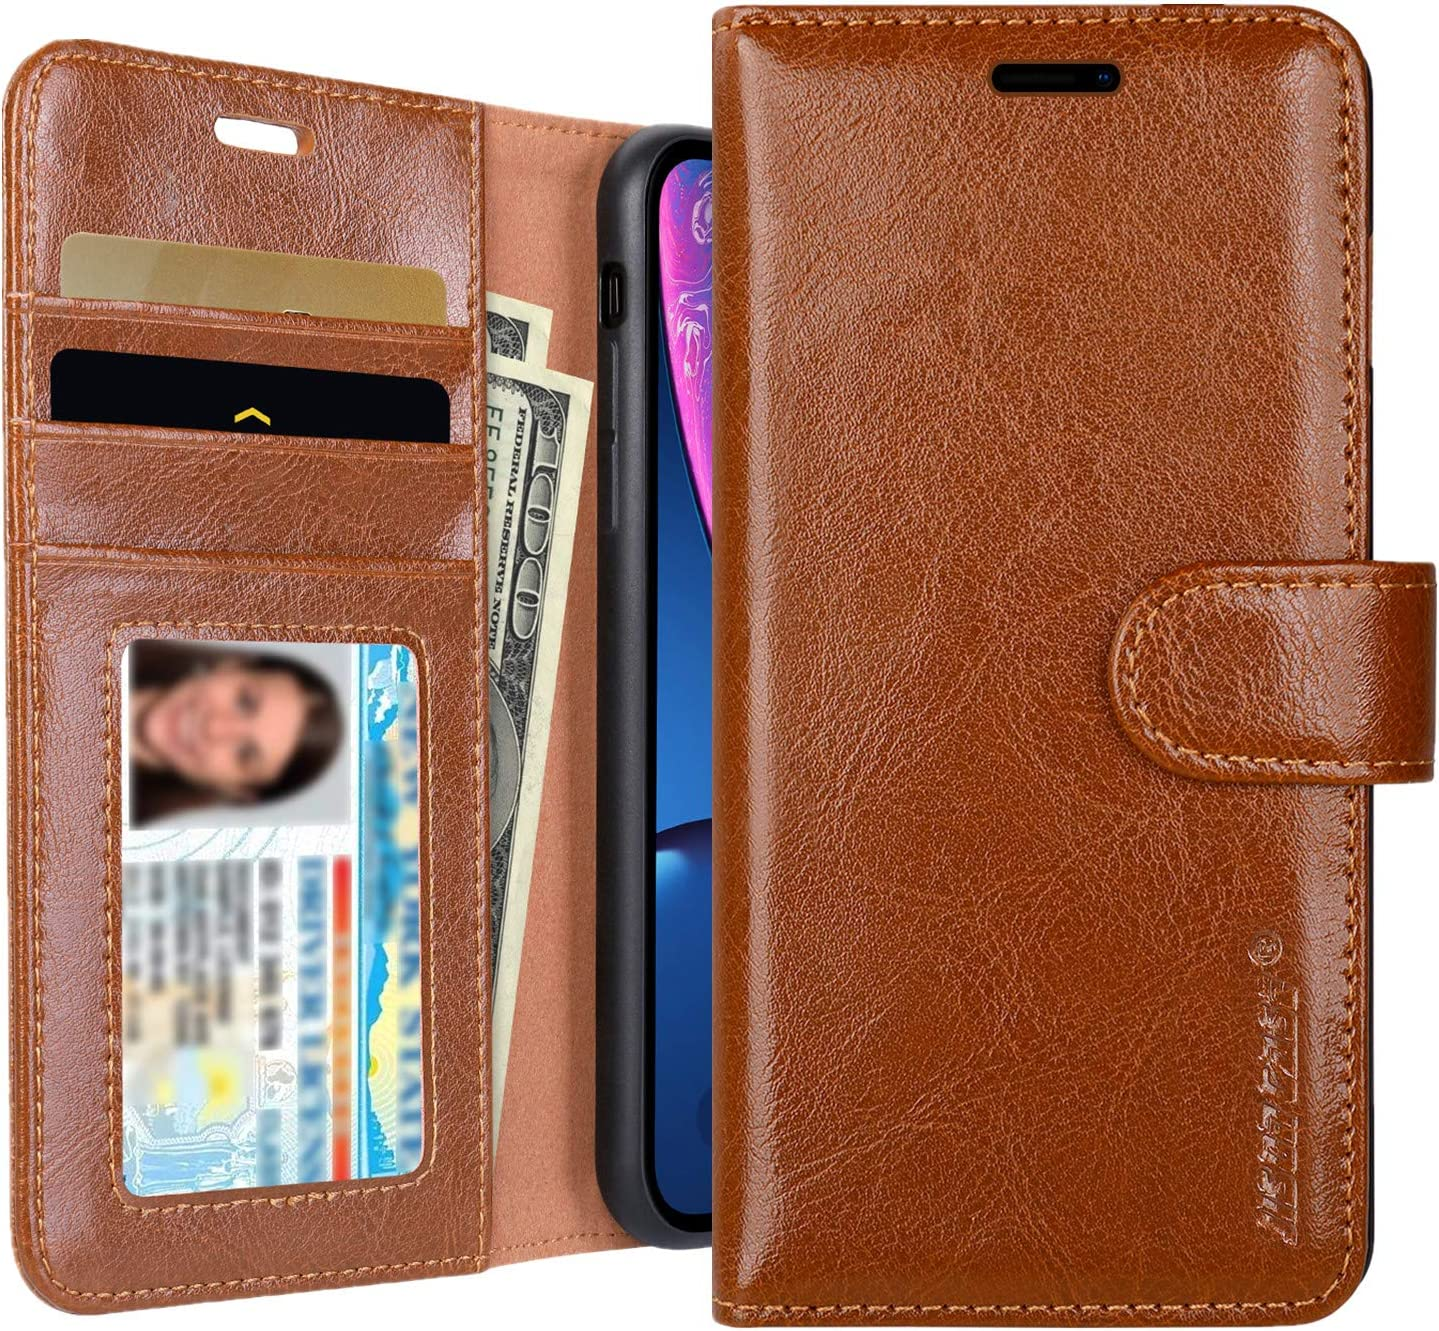 JISONCASE iPhone XR Wallet Case, Leather iPhone Xr Cases with Credit Card Holder Slot Magnetic Closure Shockproof Protective Flip Case for Apple iPhone XR 6.1 inch Brown